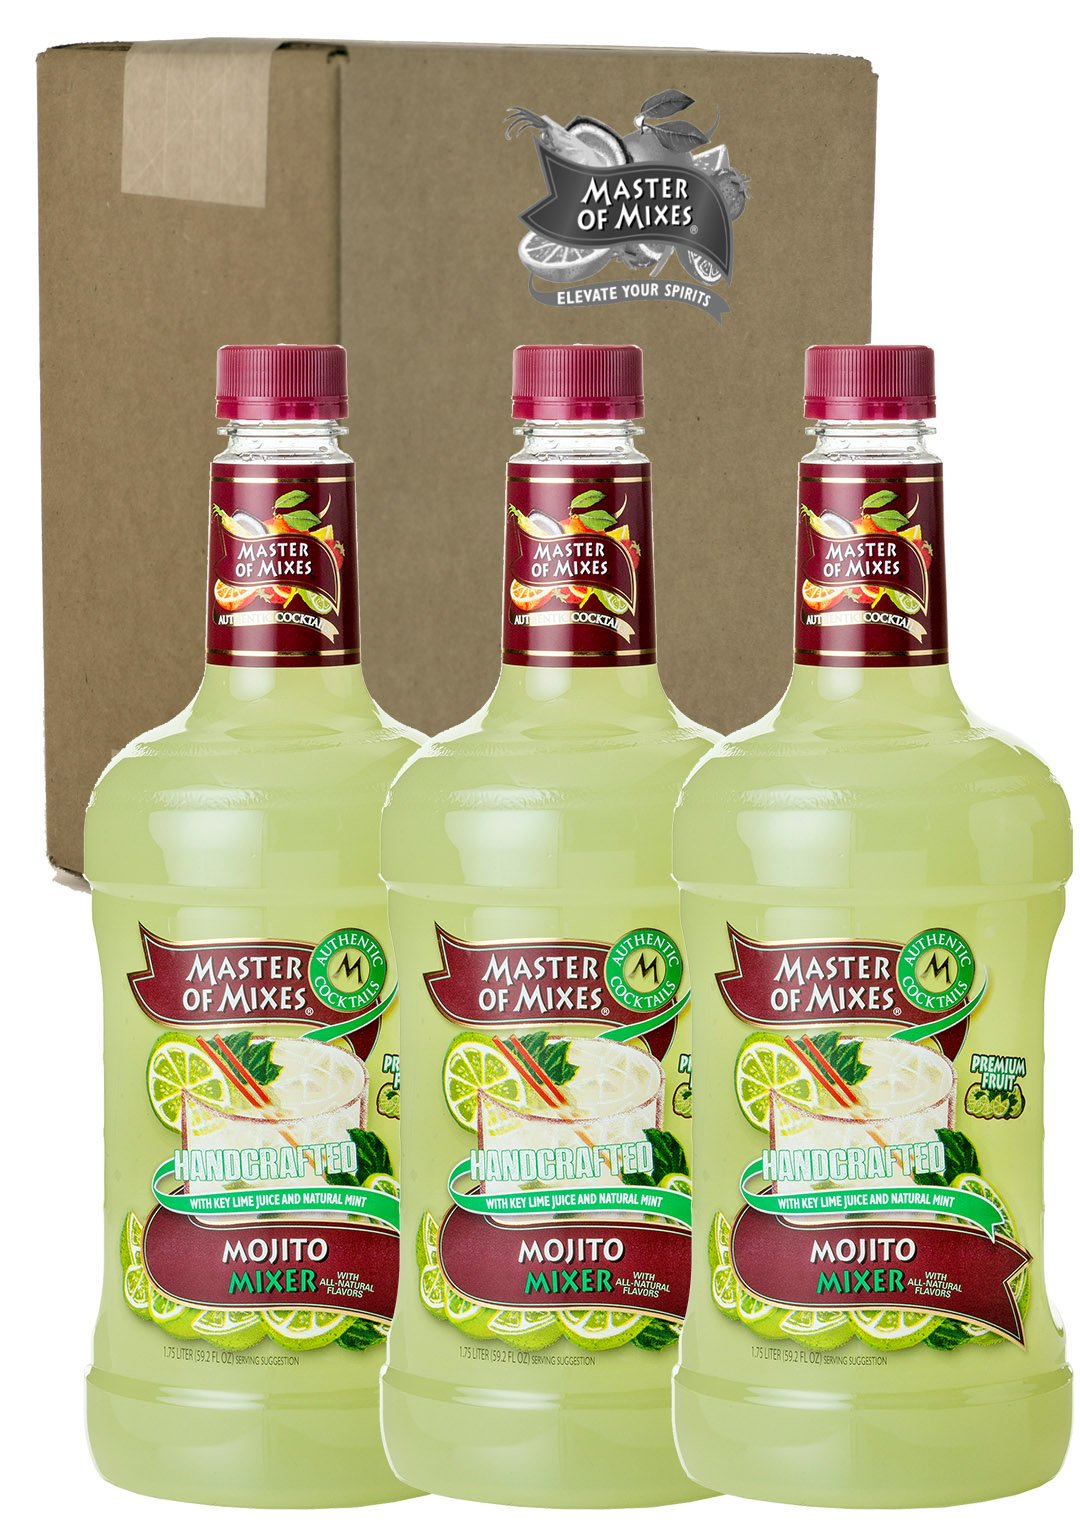 Master of Mixes Mojito Drink Mix, Ready To Use, 1.75 Liter Bottle (59.2 Fl Oz), Pack of 3 by Master of Mixes